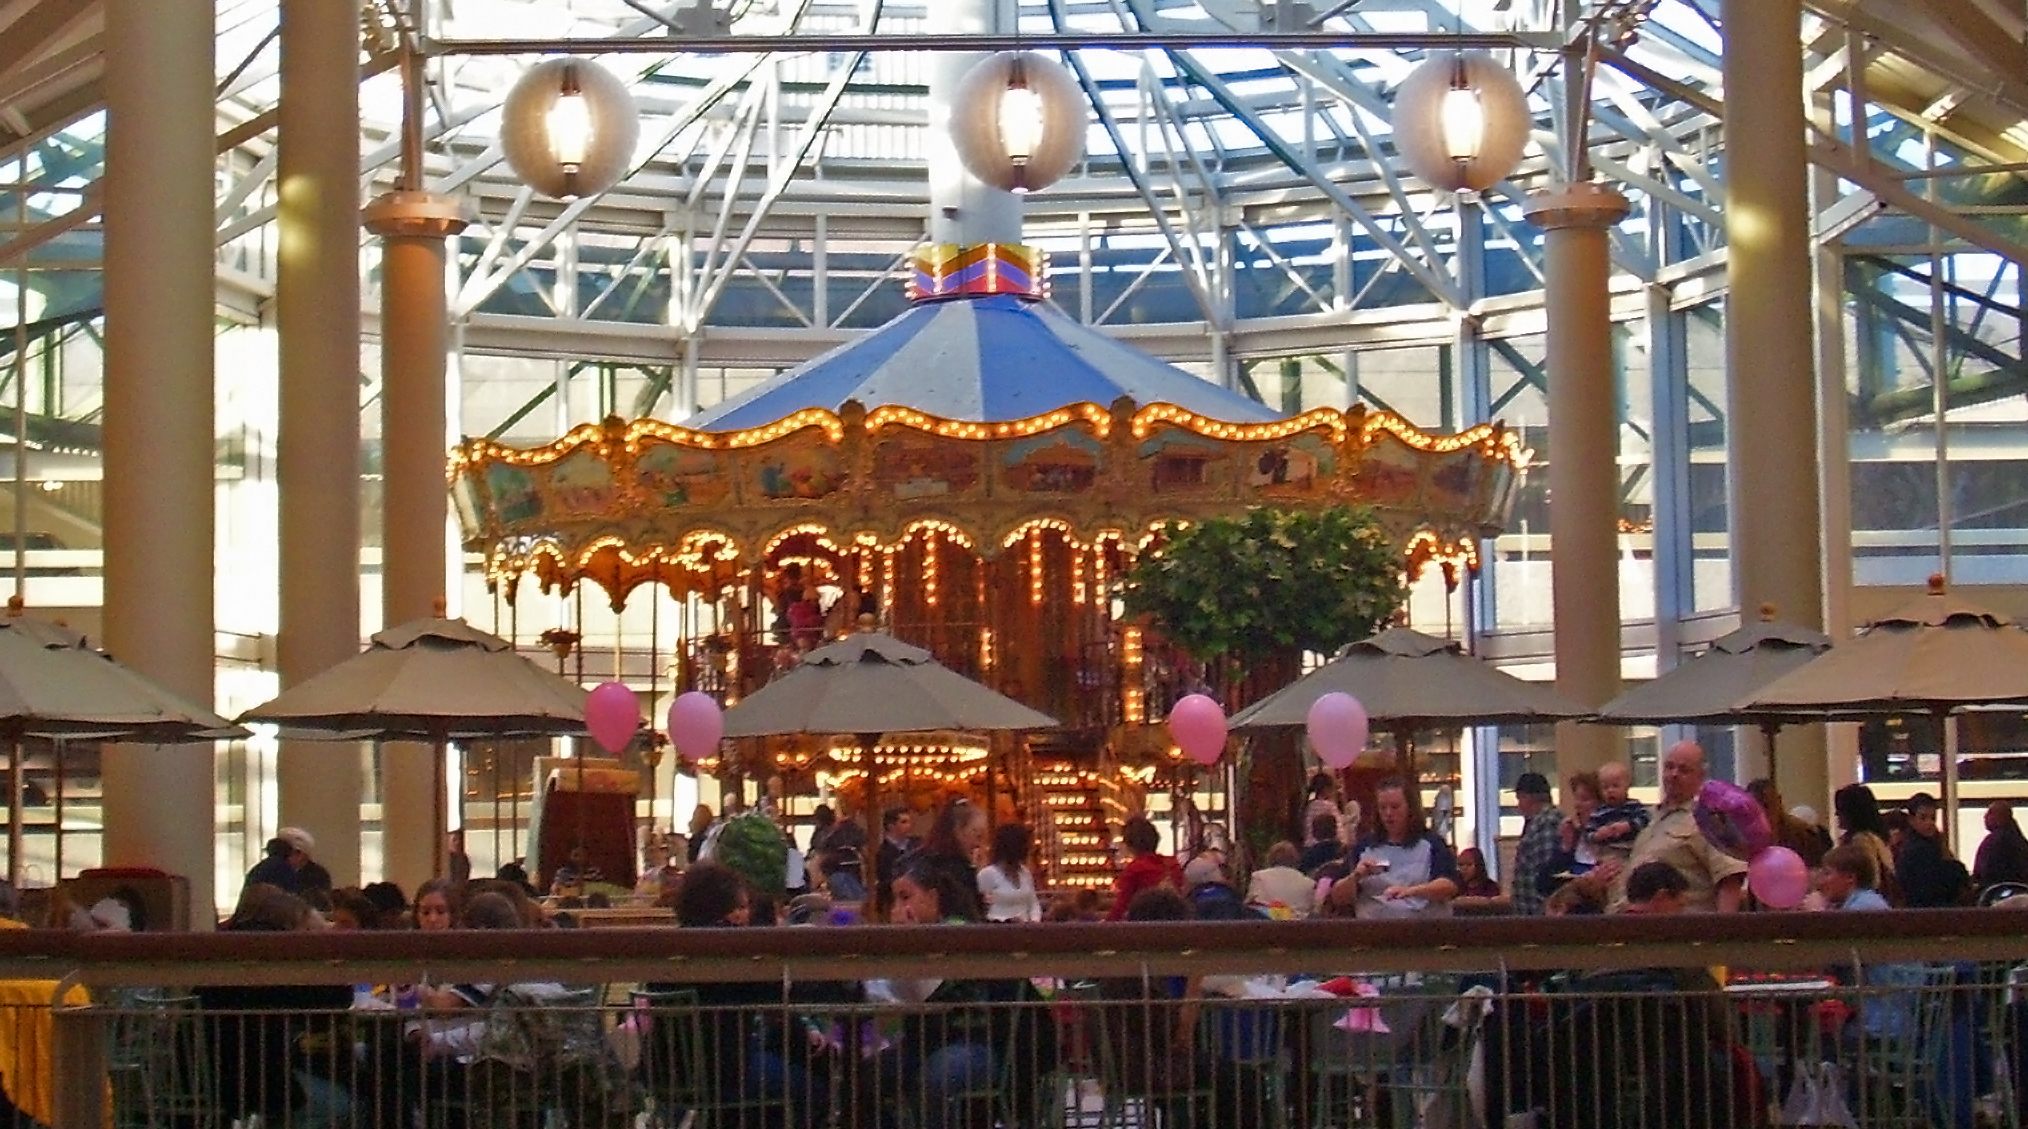 Danbury Fair Mall carousel